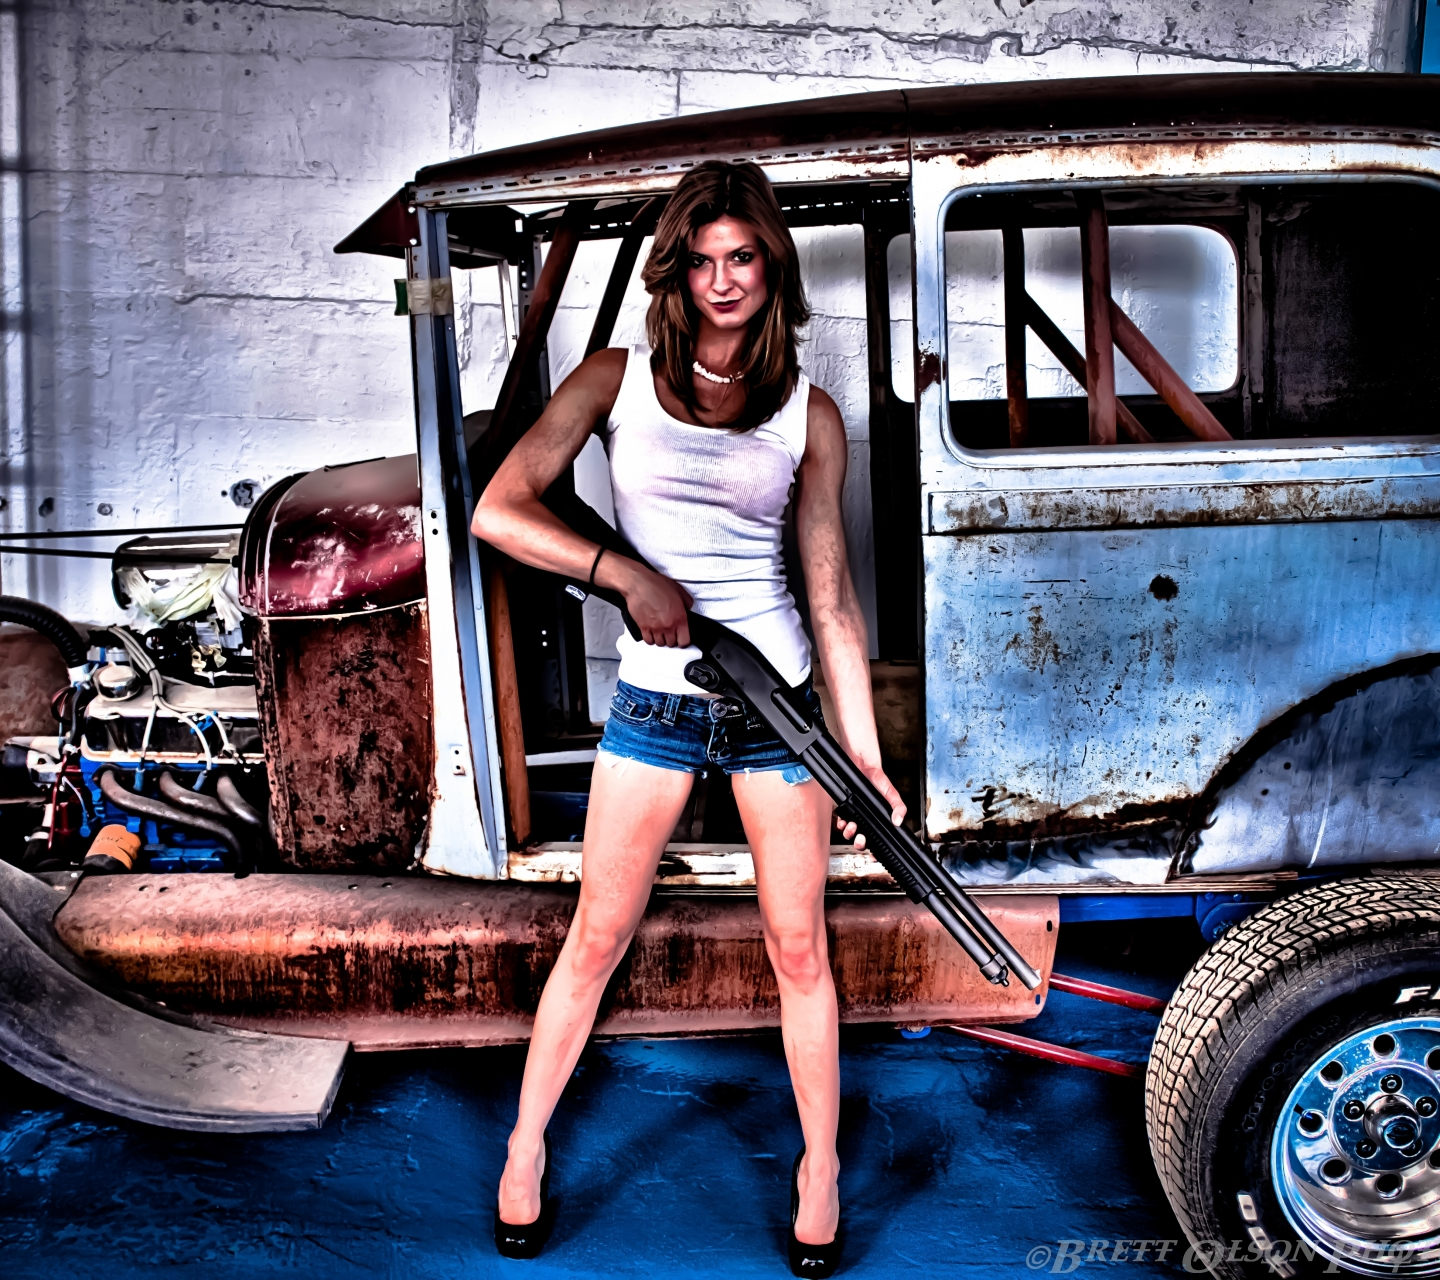 Womengirls guns 1440x1280 wallpaper id 588021 mobile abyss wallpaper 588021 voltagebd Image collections